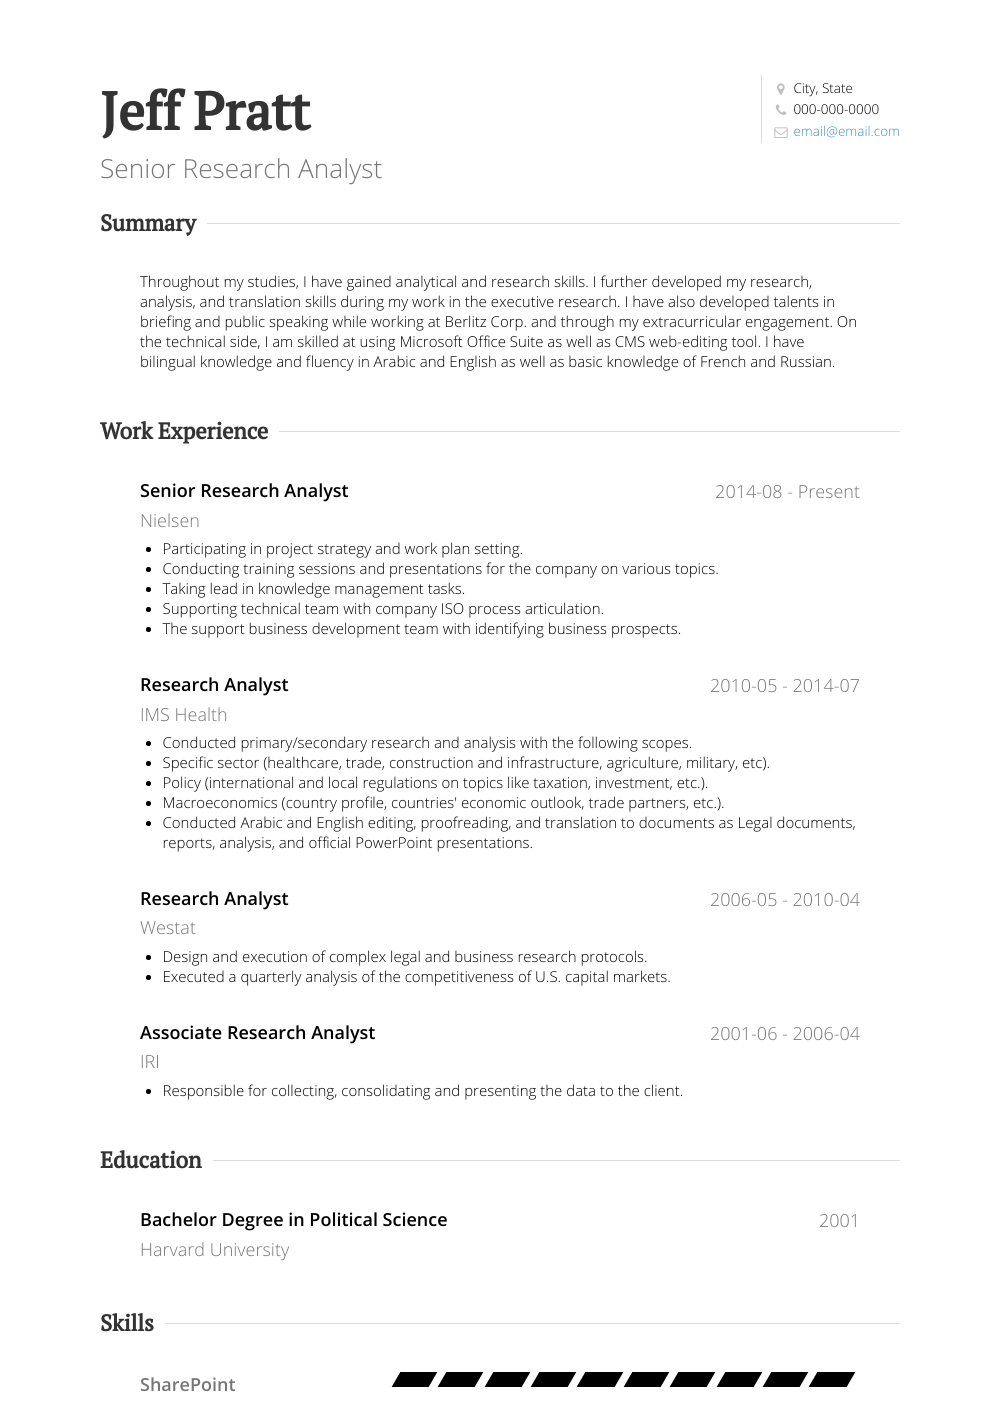 Senior Research Analyst Resume Sample and Template